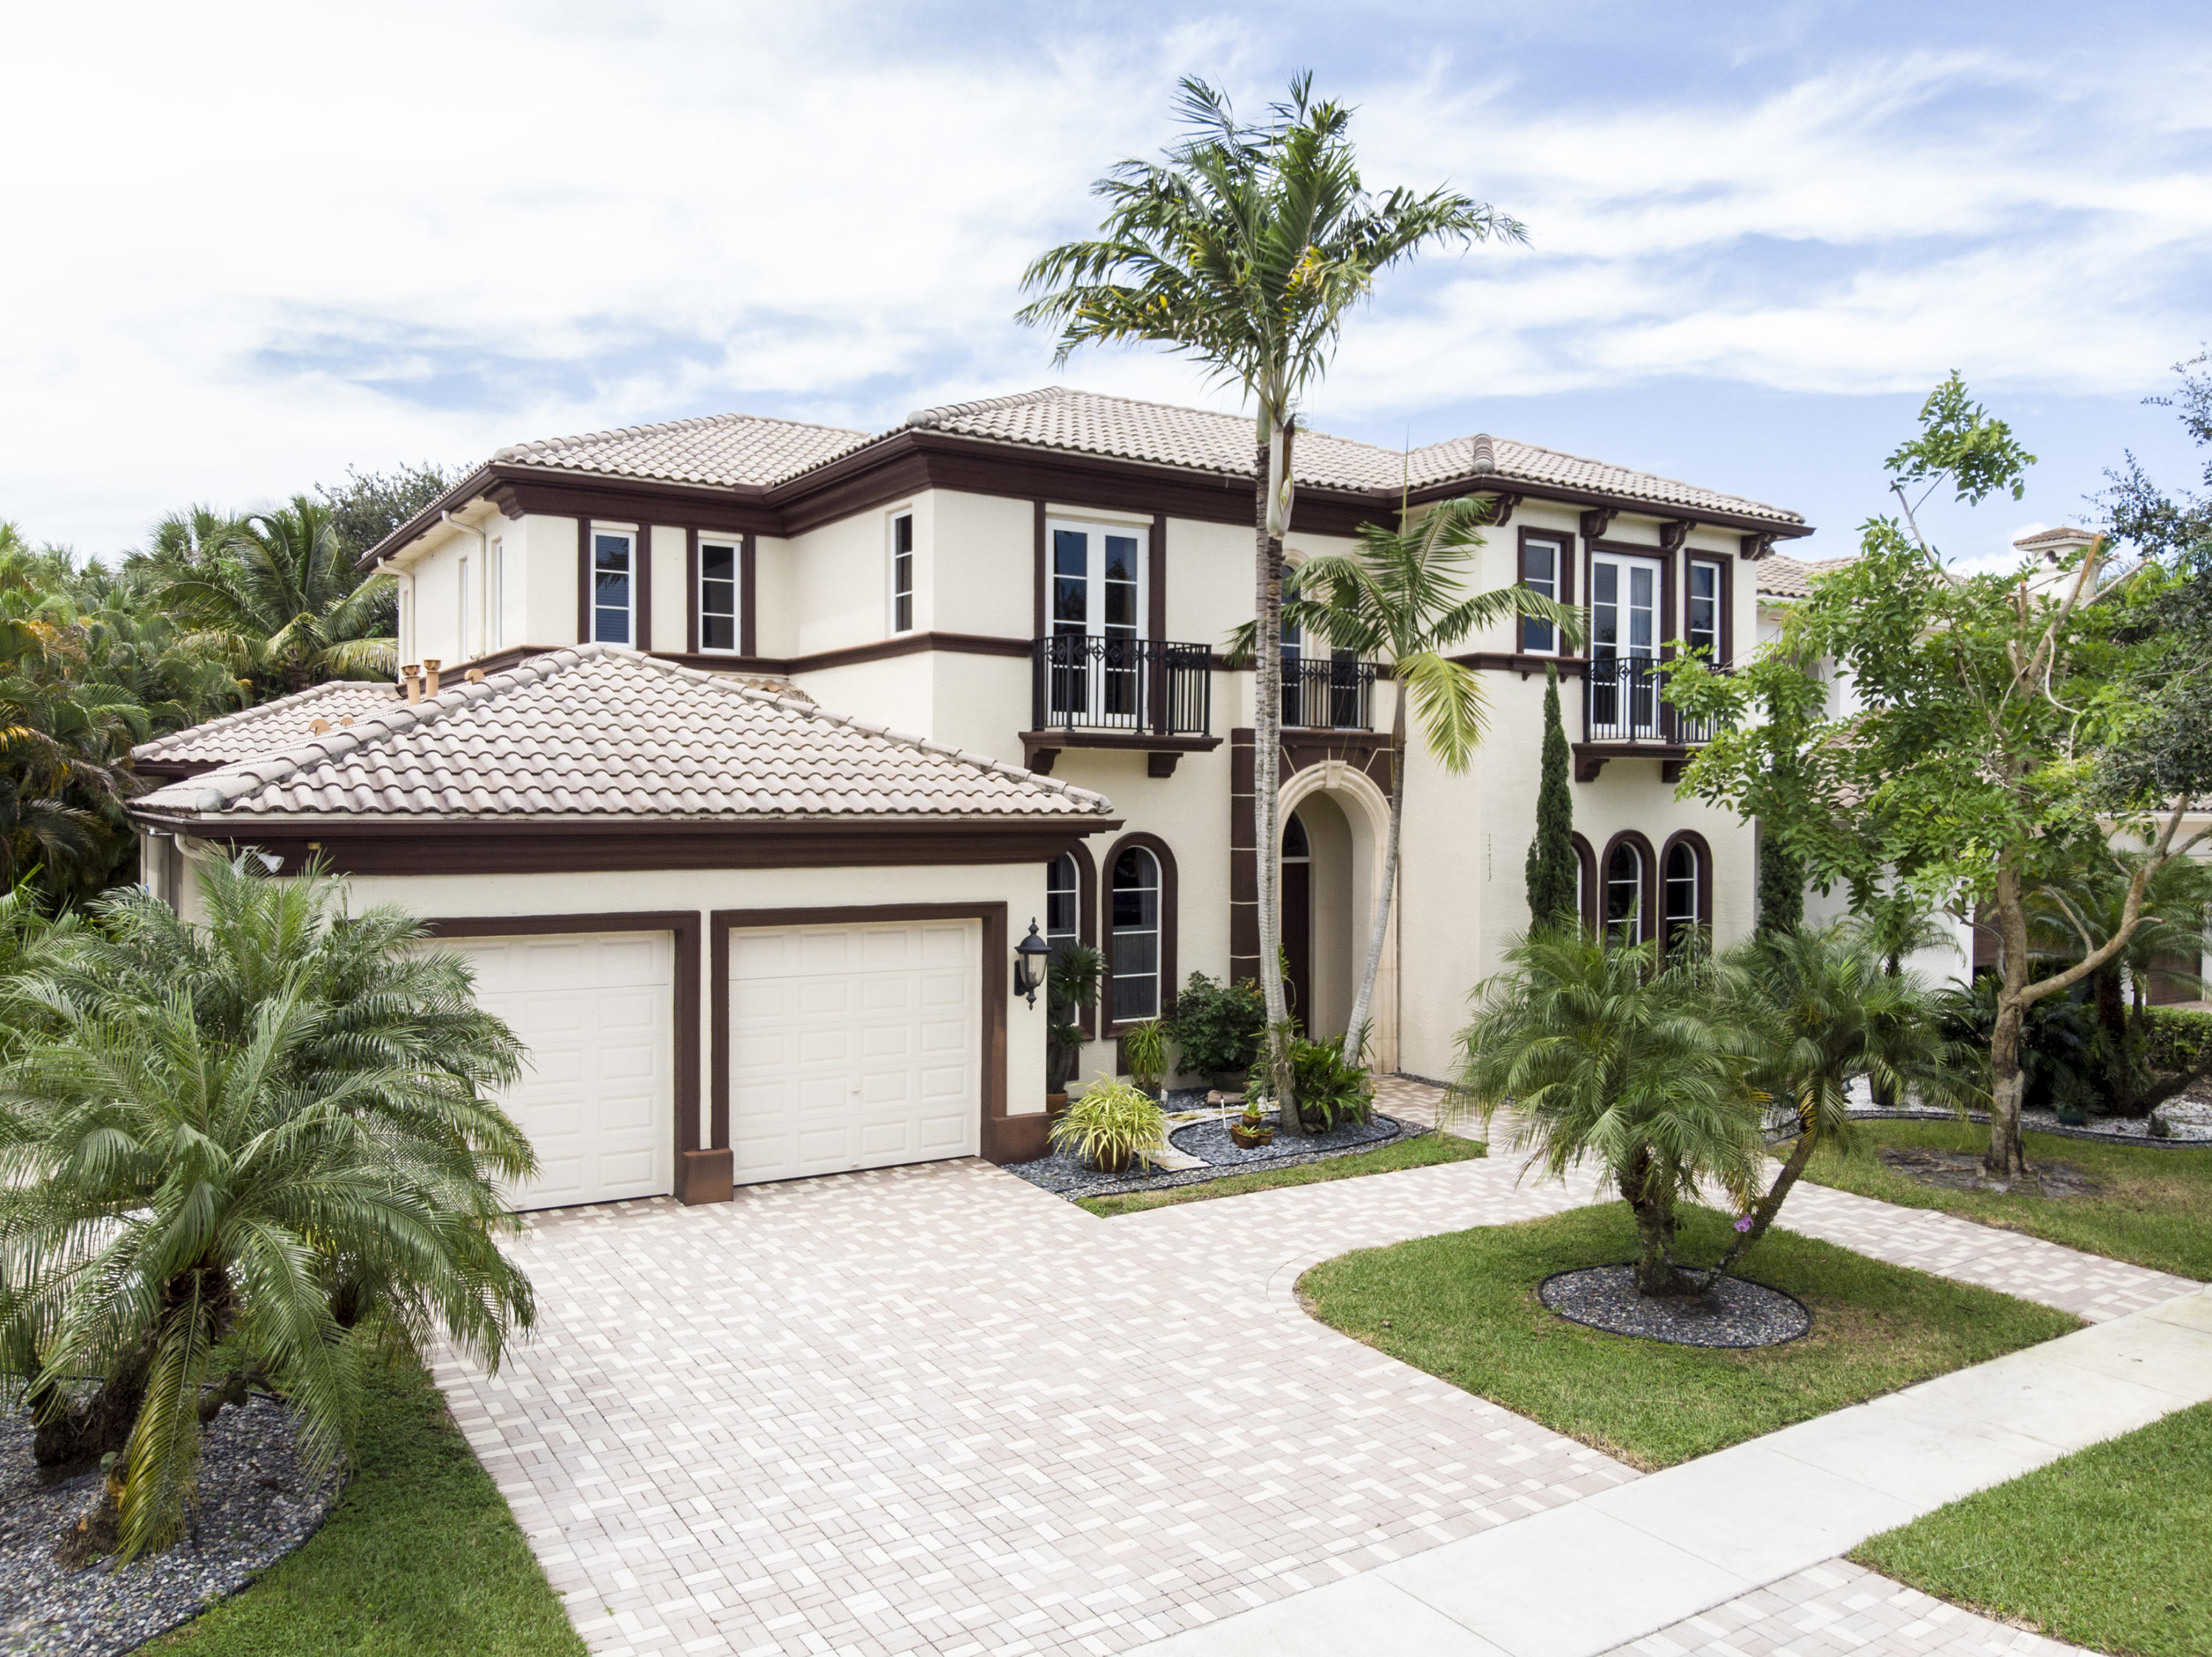 17713 Middlebrook Way, Boca Raton, Florida 33496, 6 Bedrooms Bedrooms, ,6.1 BathroomsBathrooms,Single Family,For Sale,THE OAKS,Middlebrook,RX-10357371